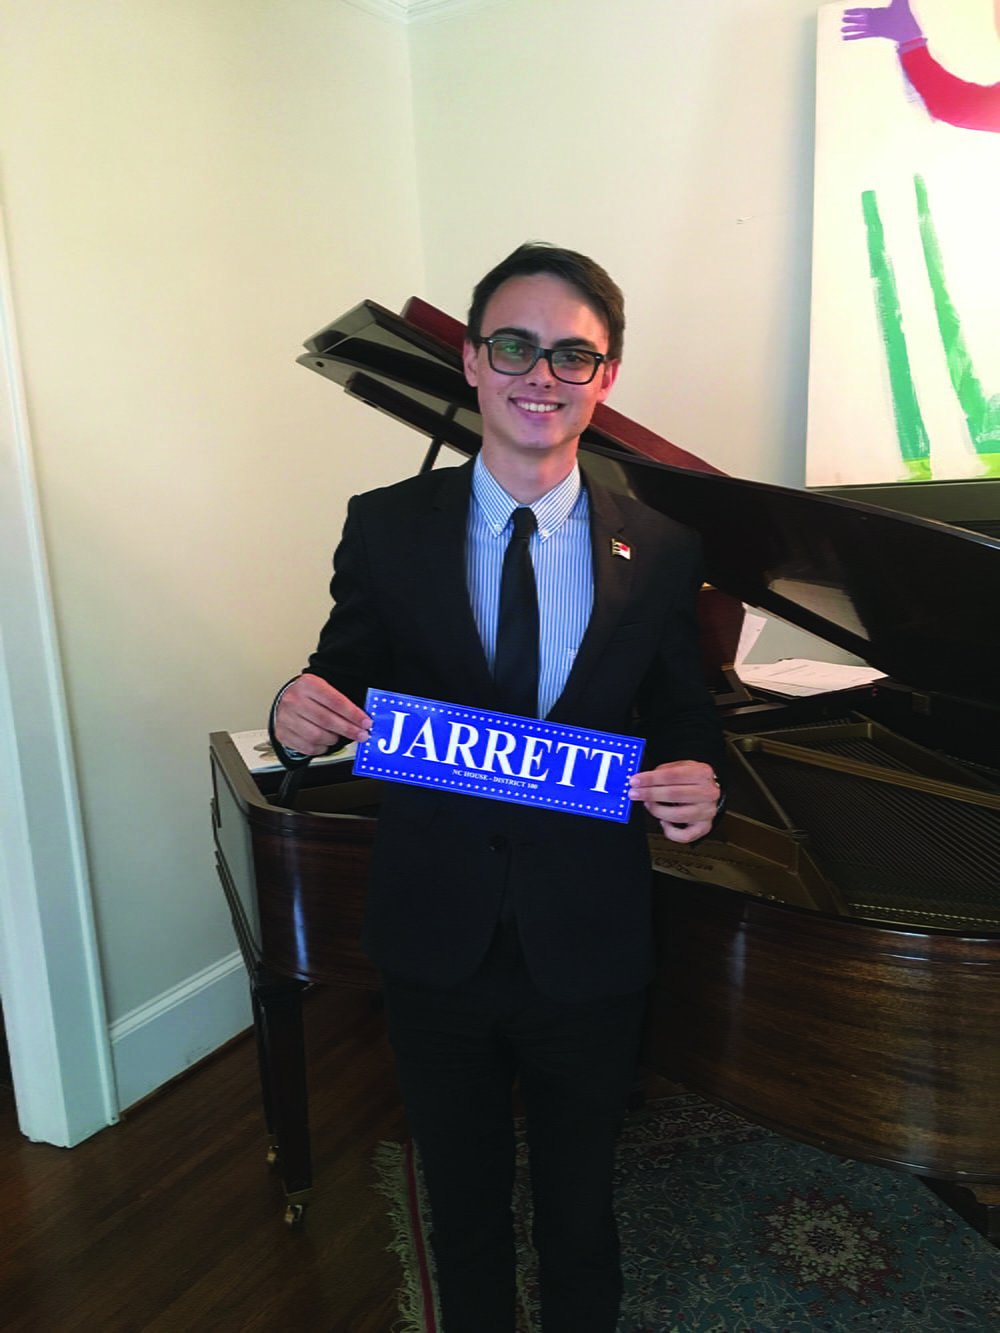 Young legislative candidate chases history in NC - The ...